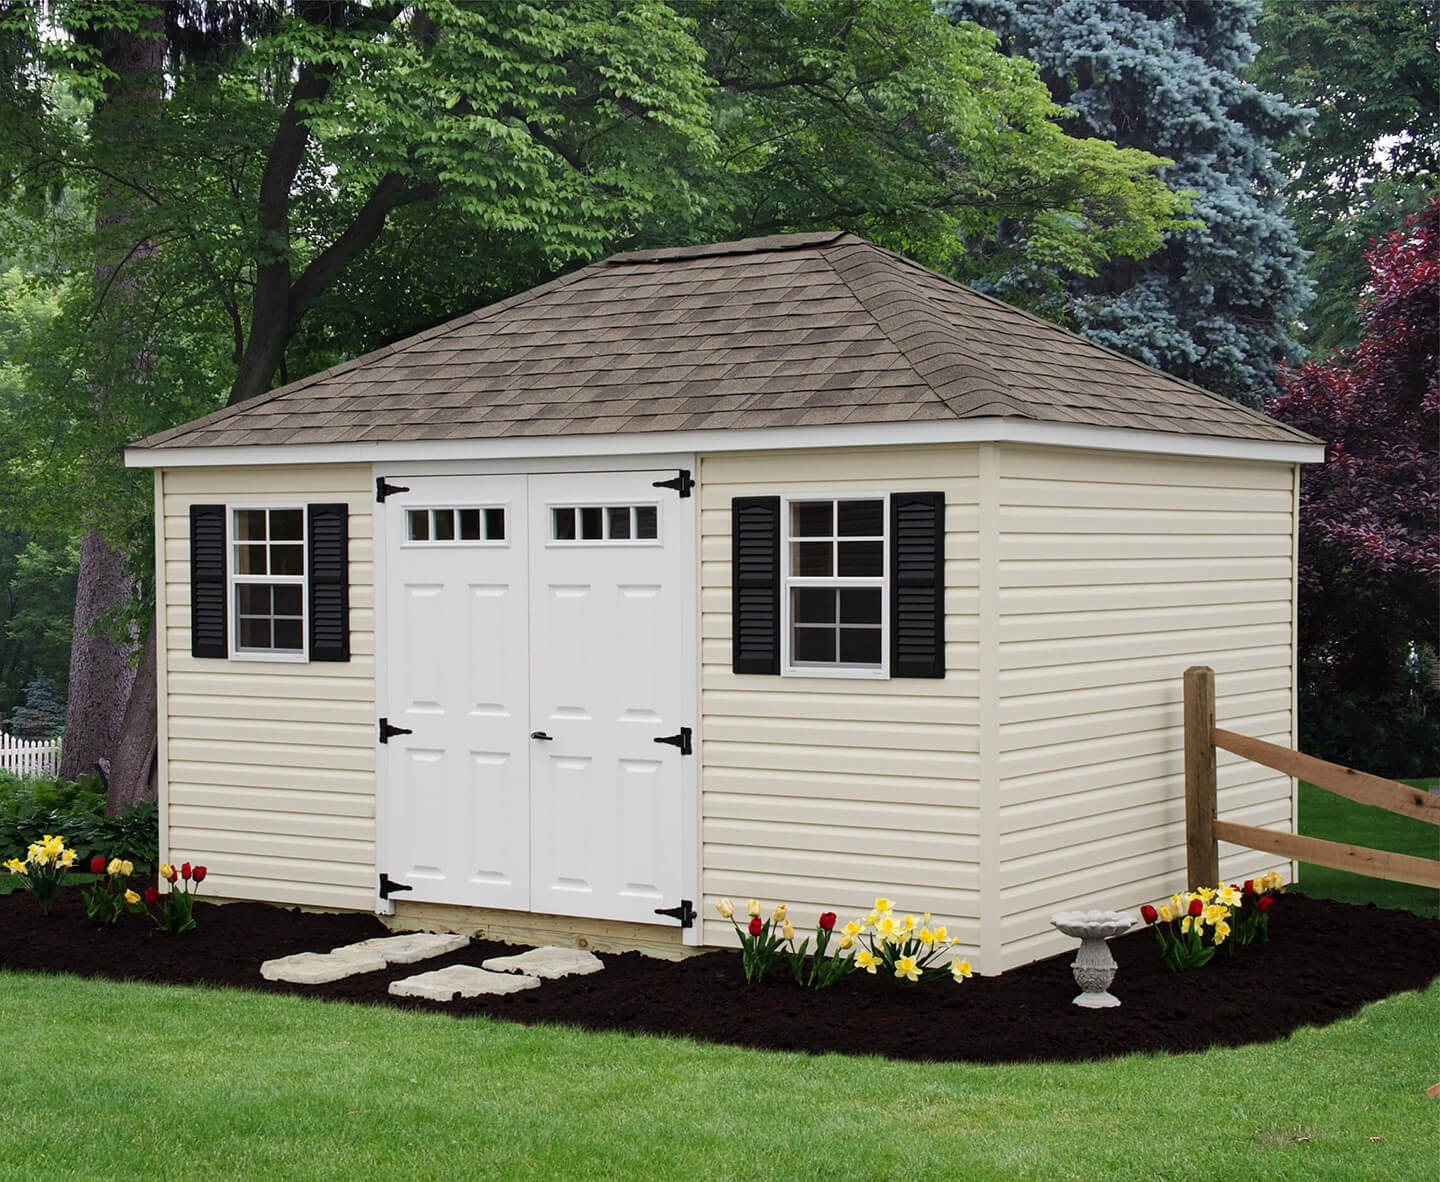 Superbe Awesome Garden Sheds Long Island Ny Images   Garden And Landscape .